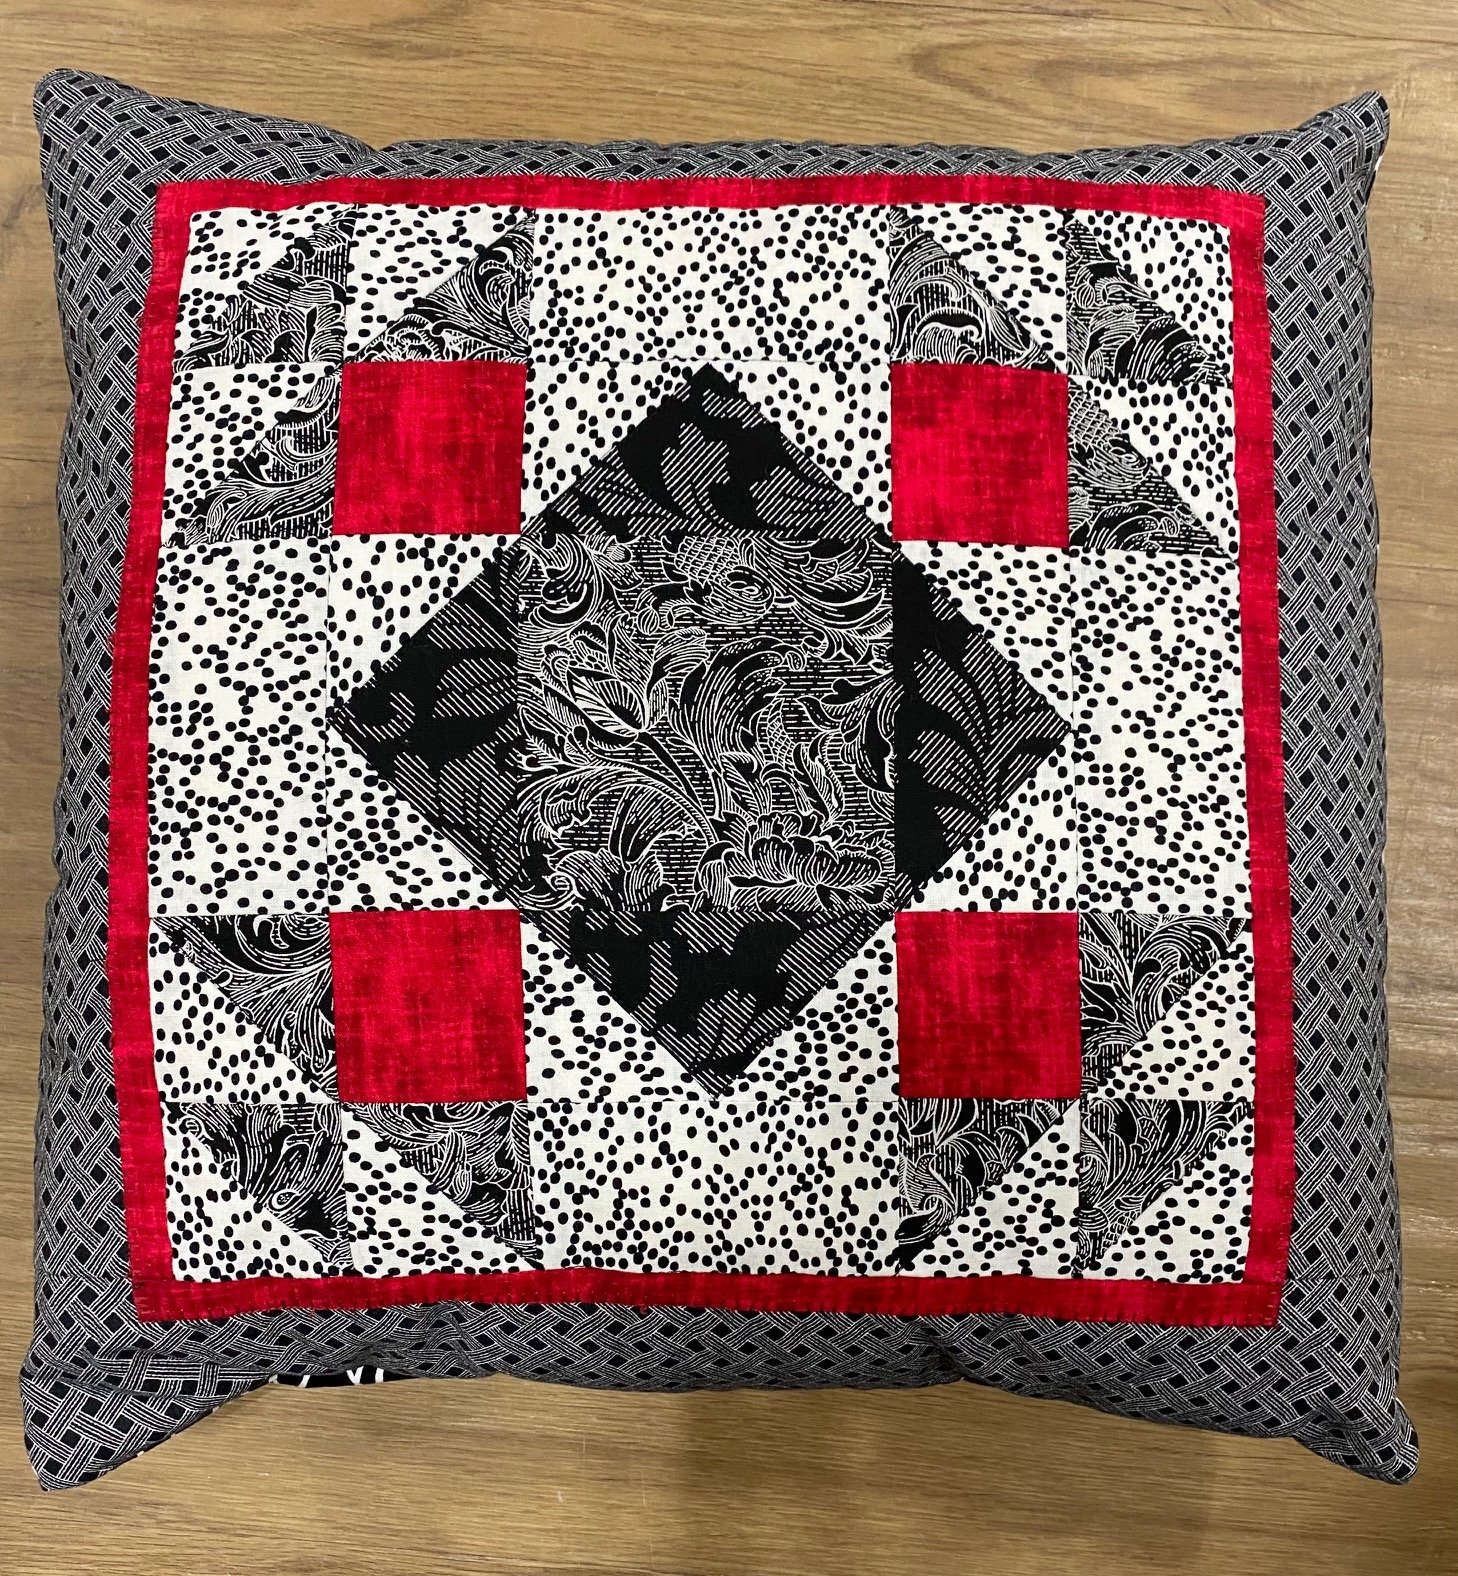 Black, Red and White Pillow